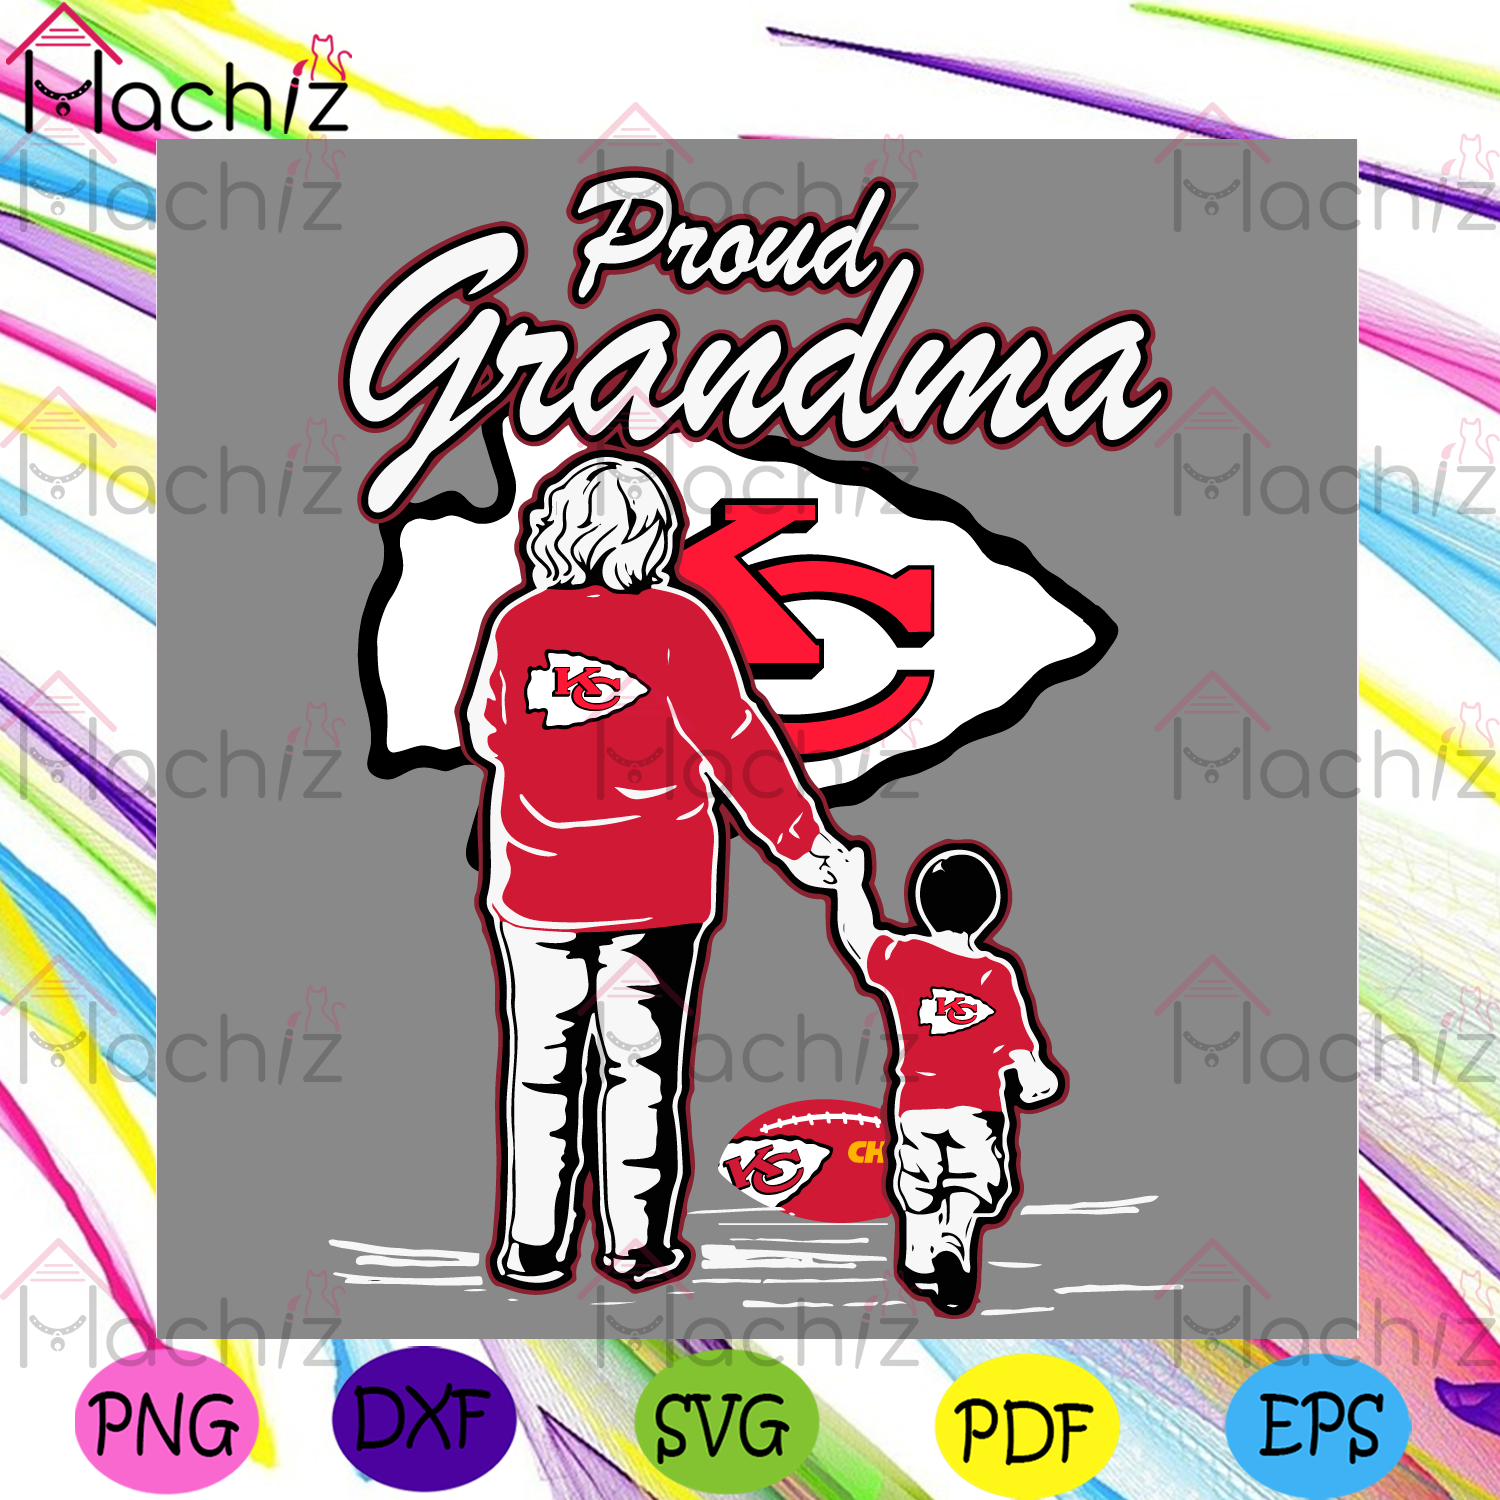 Pround Grandma Kansas City Chiefs Svg, Sport Svg, Grandpa Svg, Kansas City Chiefs Svg, Kansas City Chiefs Logo Svg, Grandma Gifts Svg, Chiefs Fans Svg, Chiefs Football Svg, Super Bowl 2021 Svg, NFL Svg, Grandma Svg, Grandpa Gifts Svg